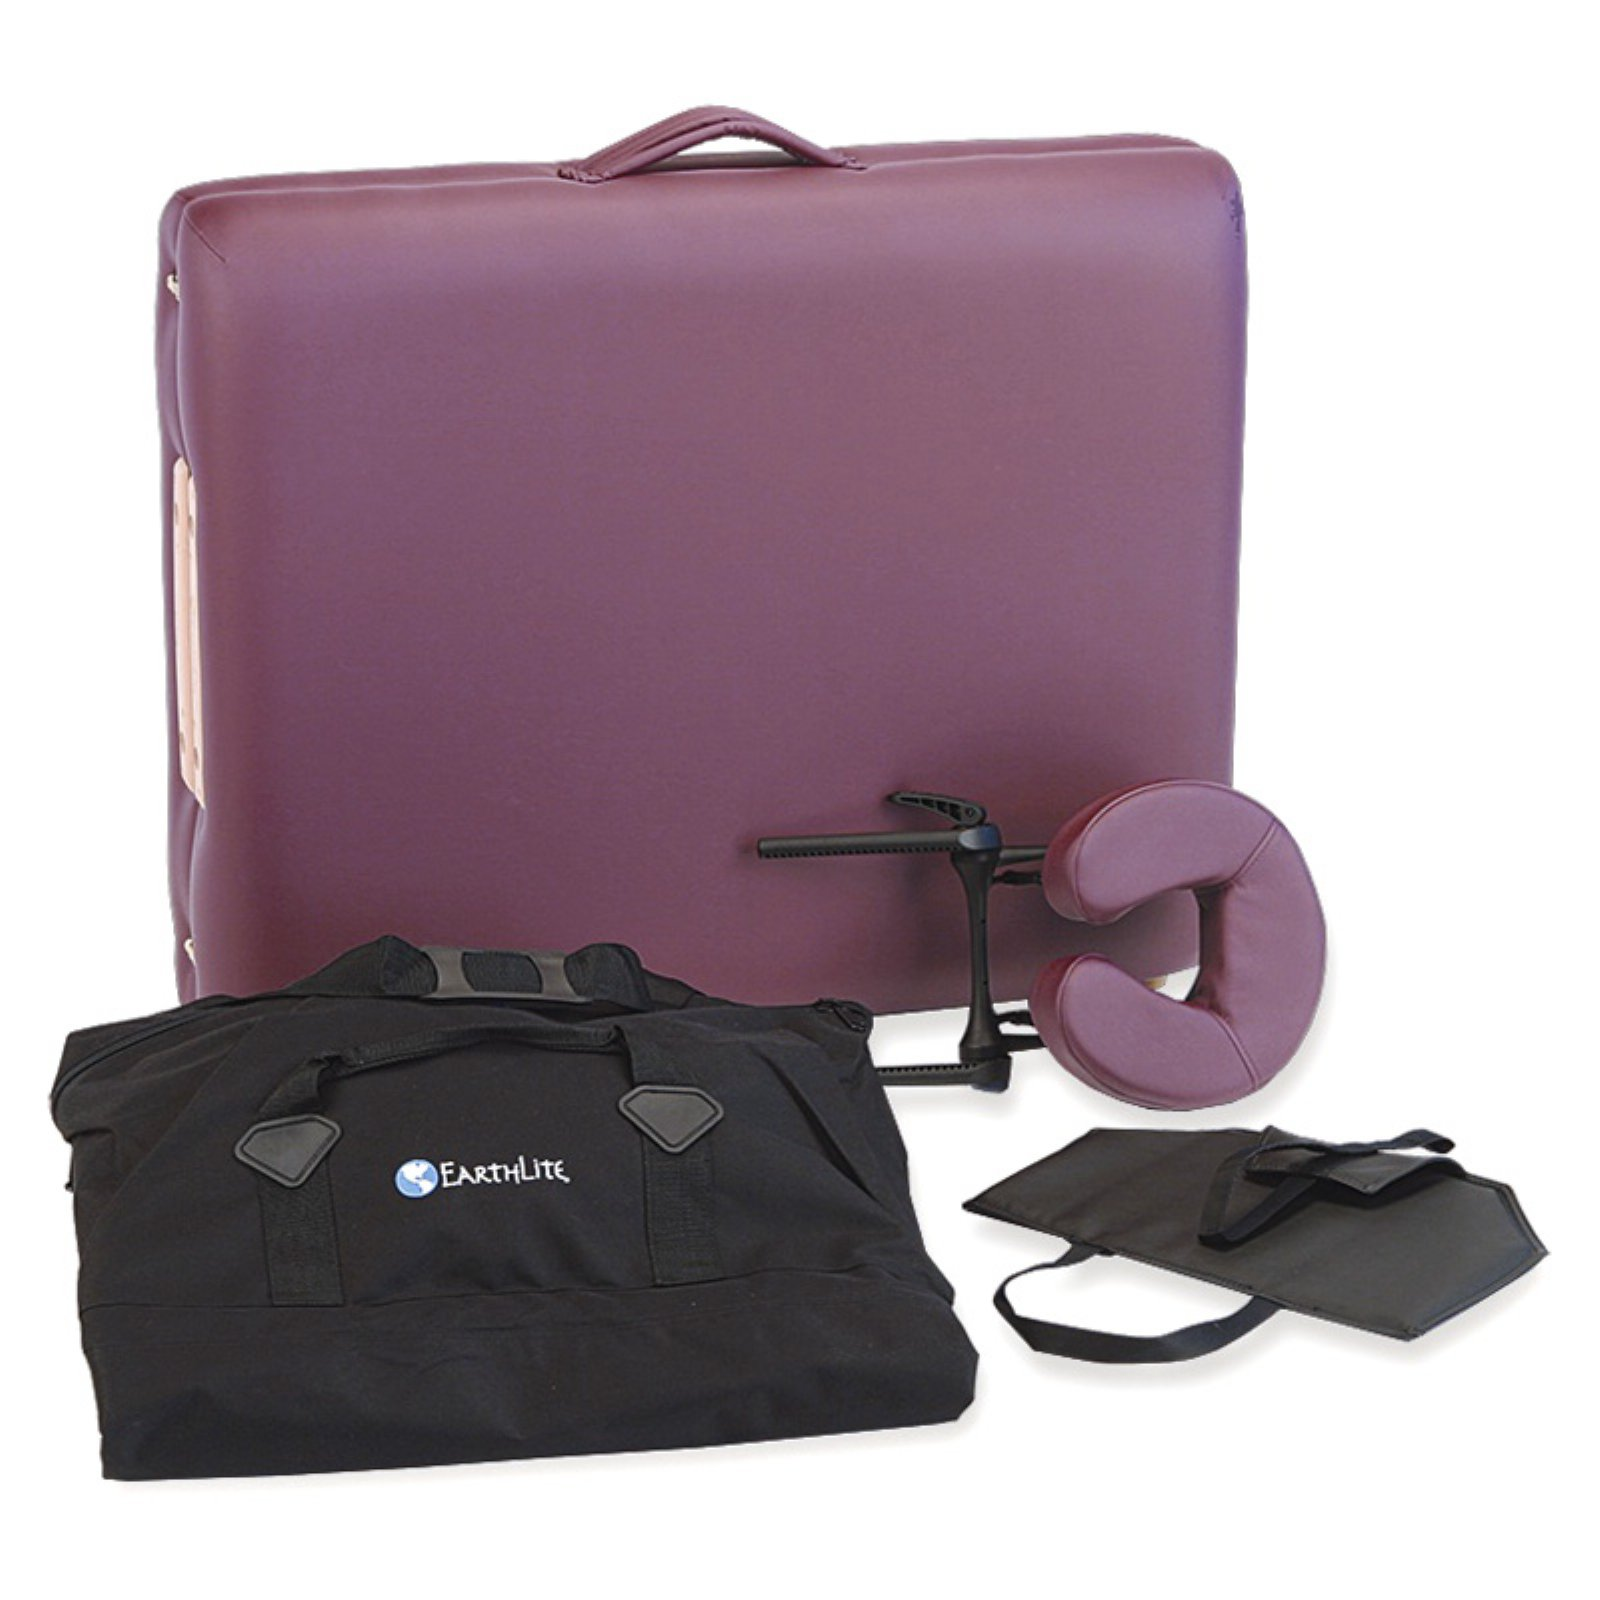 EarthLite Avalon Tilt Portable Massage Table Package